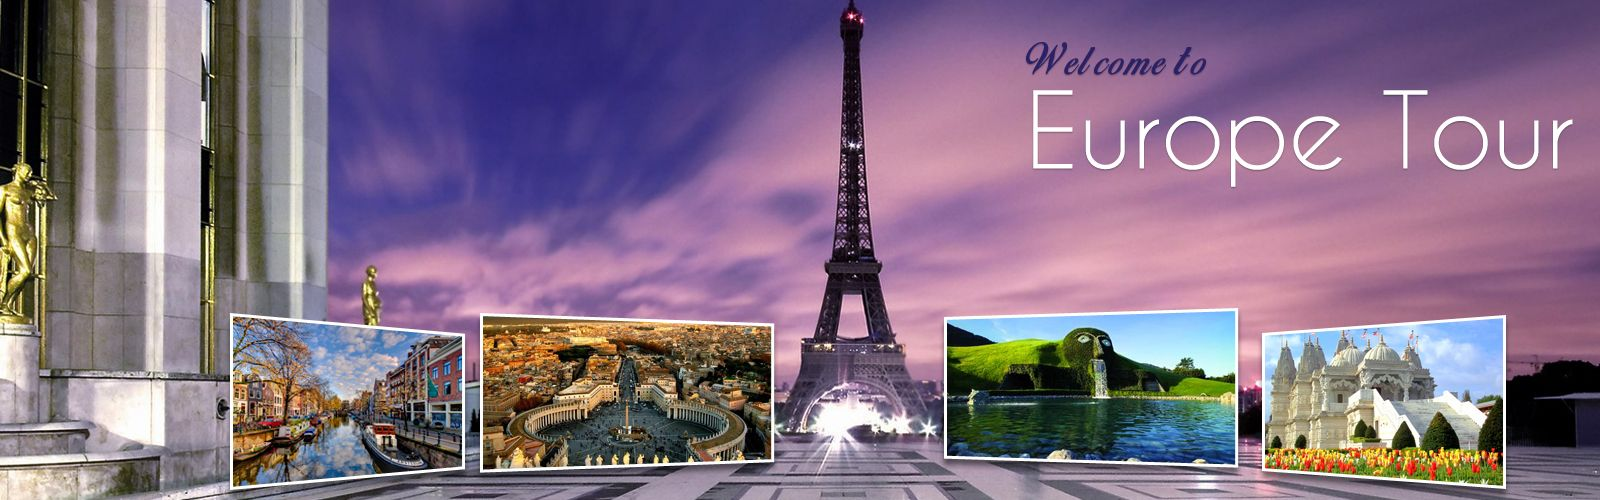 Explore The Beauty Of Europe Tour Europe Tour Packages From - Europe tours packages